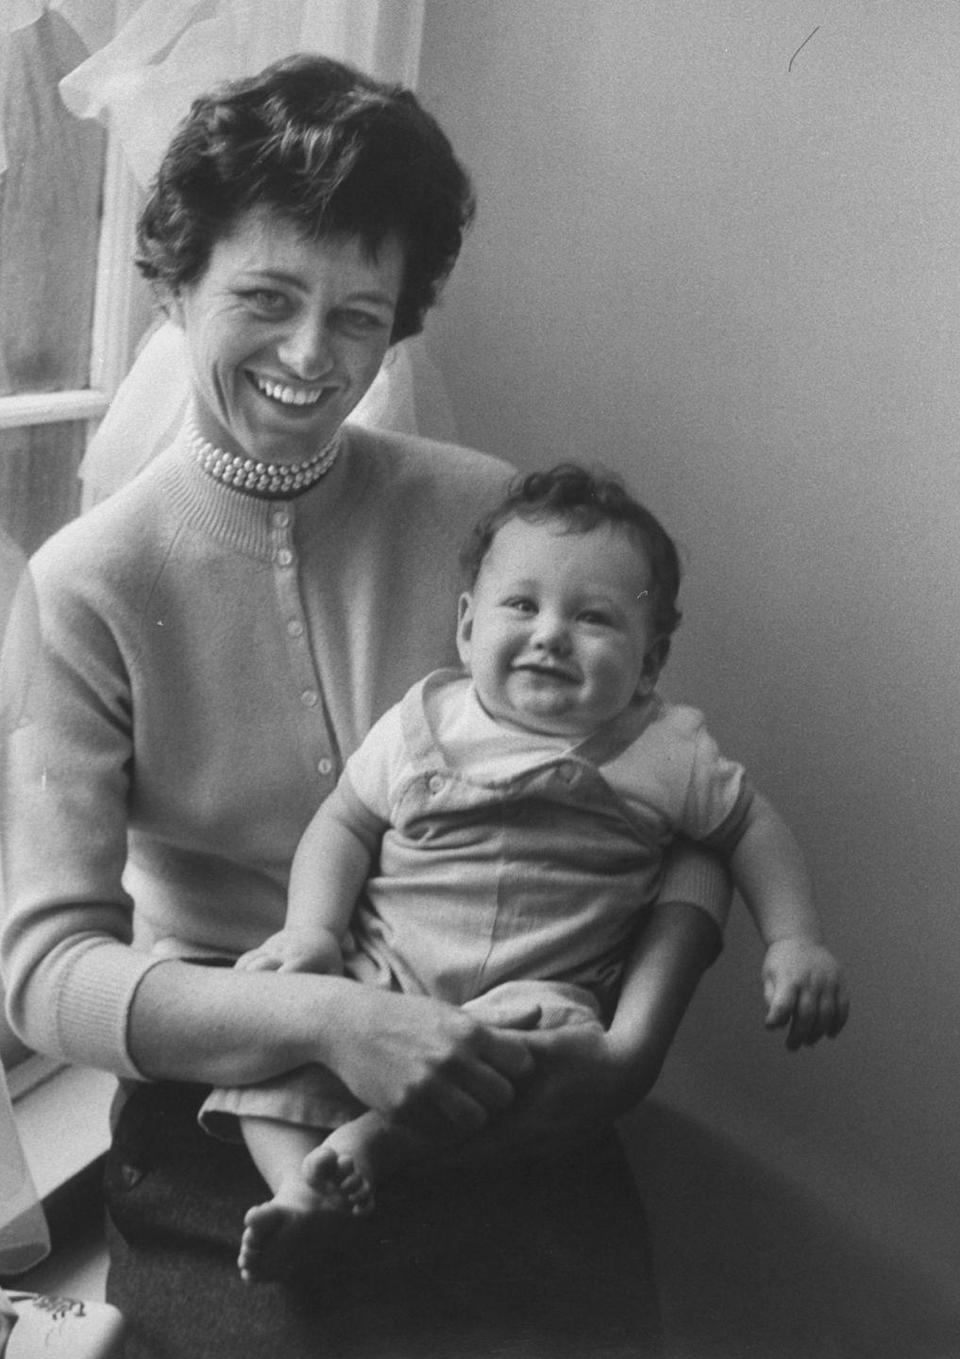 <p>Jean posed with her baby son, Stephen. She would go on to have another son, William, as well as adopting two daughters, Amanda and Kym. </p>